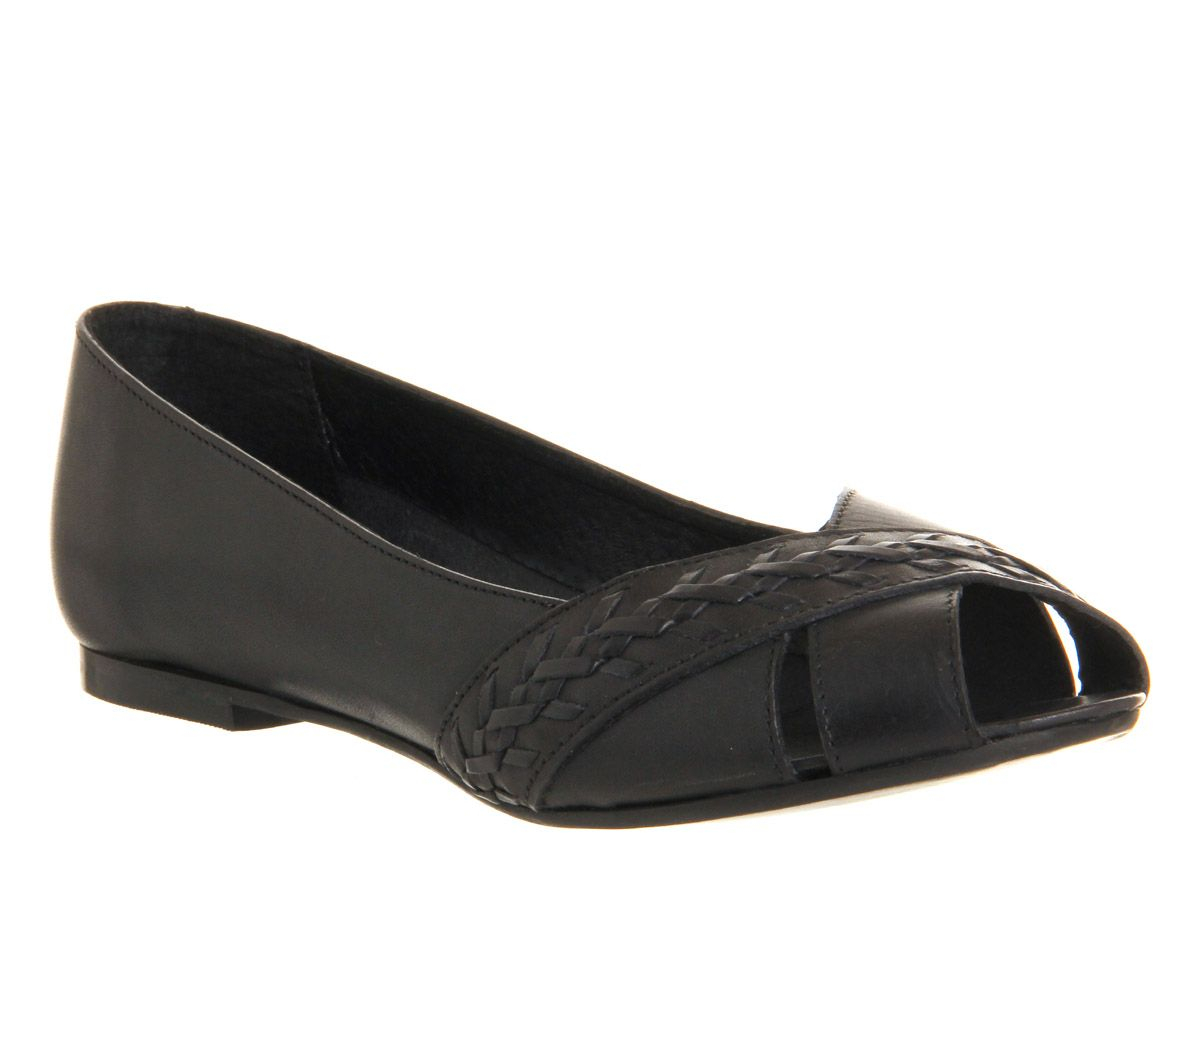 Prada Patent Leather Peep-Toe Flats - Shoes - PRA140173 ...